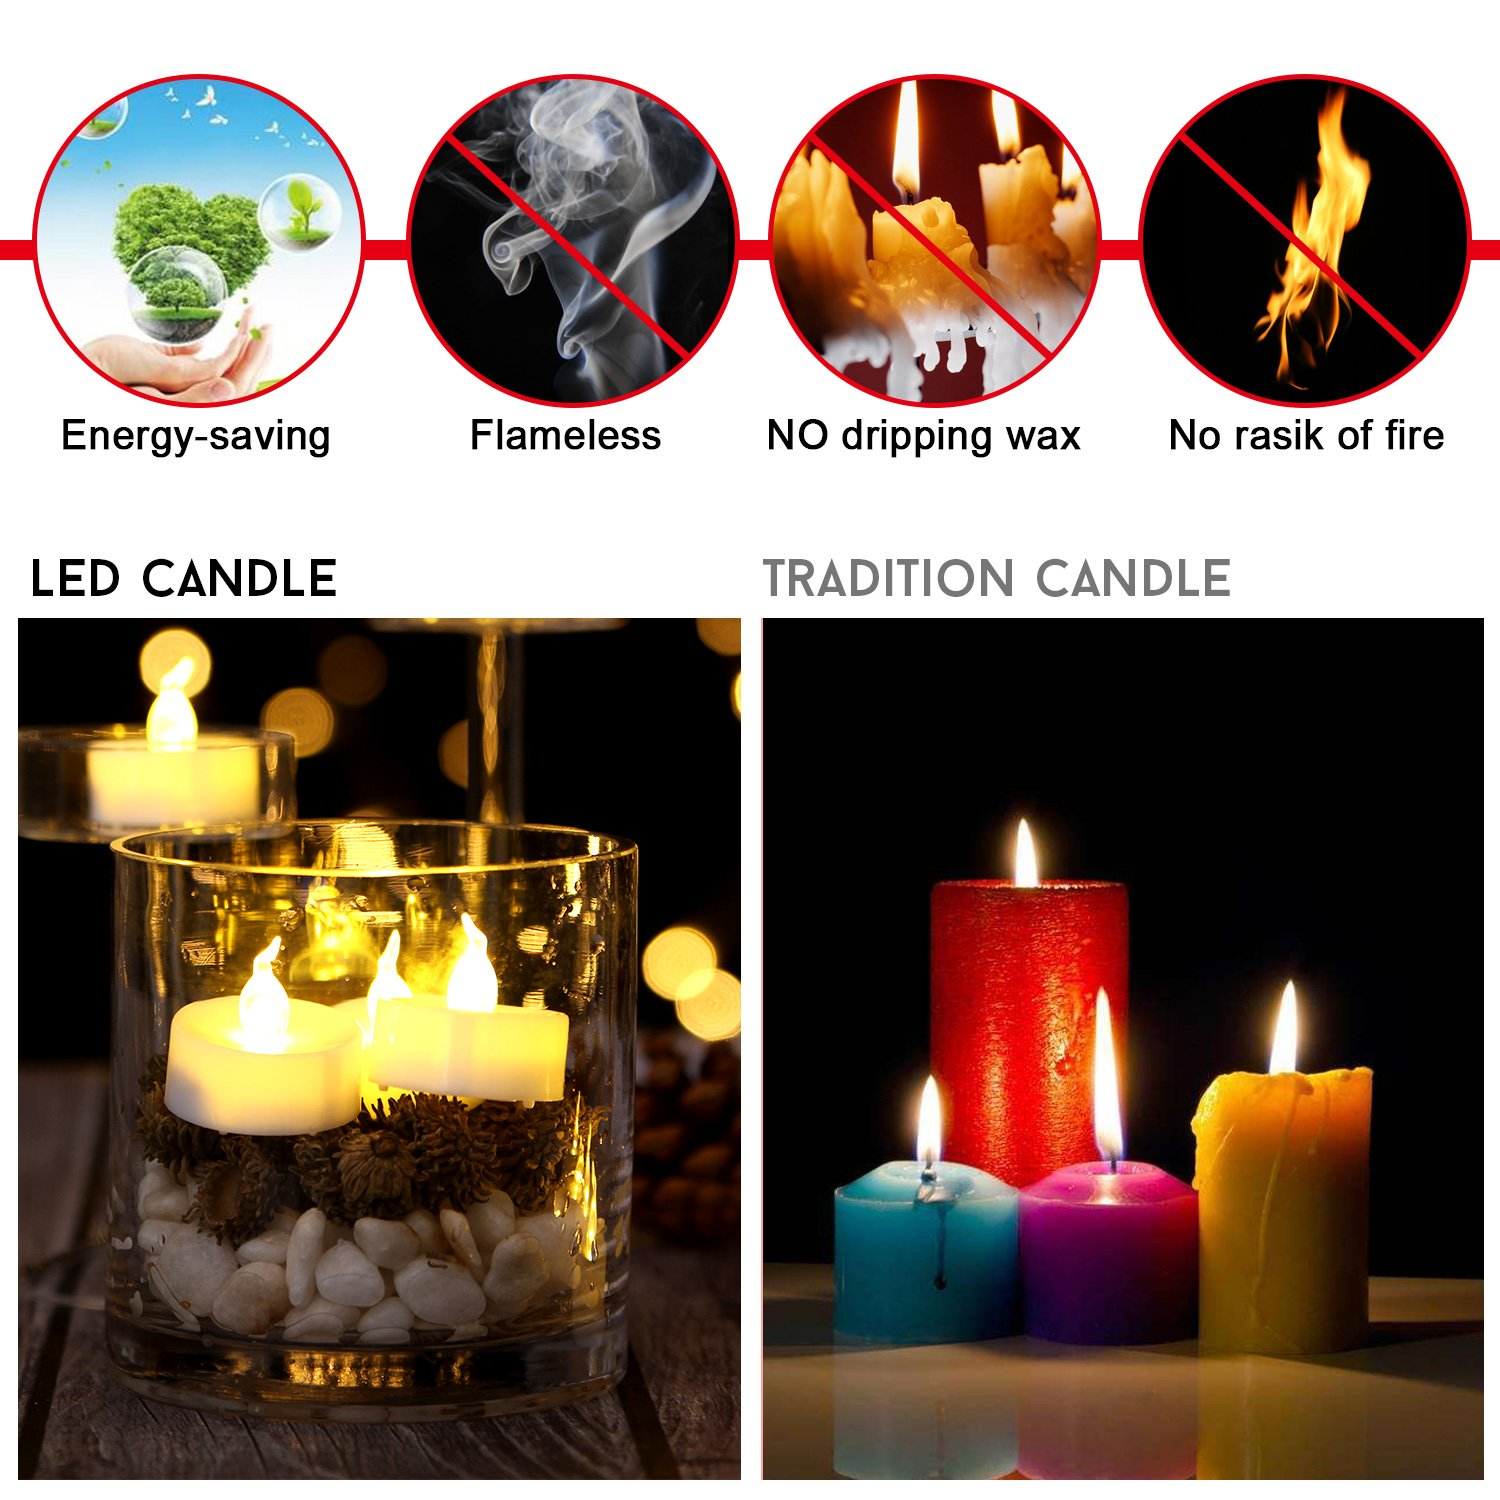 AGPtEK Tea Lights,100 Pack Flameless LED Candles Battery Operated Tealight Candles No Flicker Long Lasting Tealight for Wedding Holiday Party Home Decoration(Warm White) by AGPTEK (Image #3)